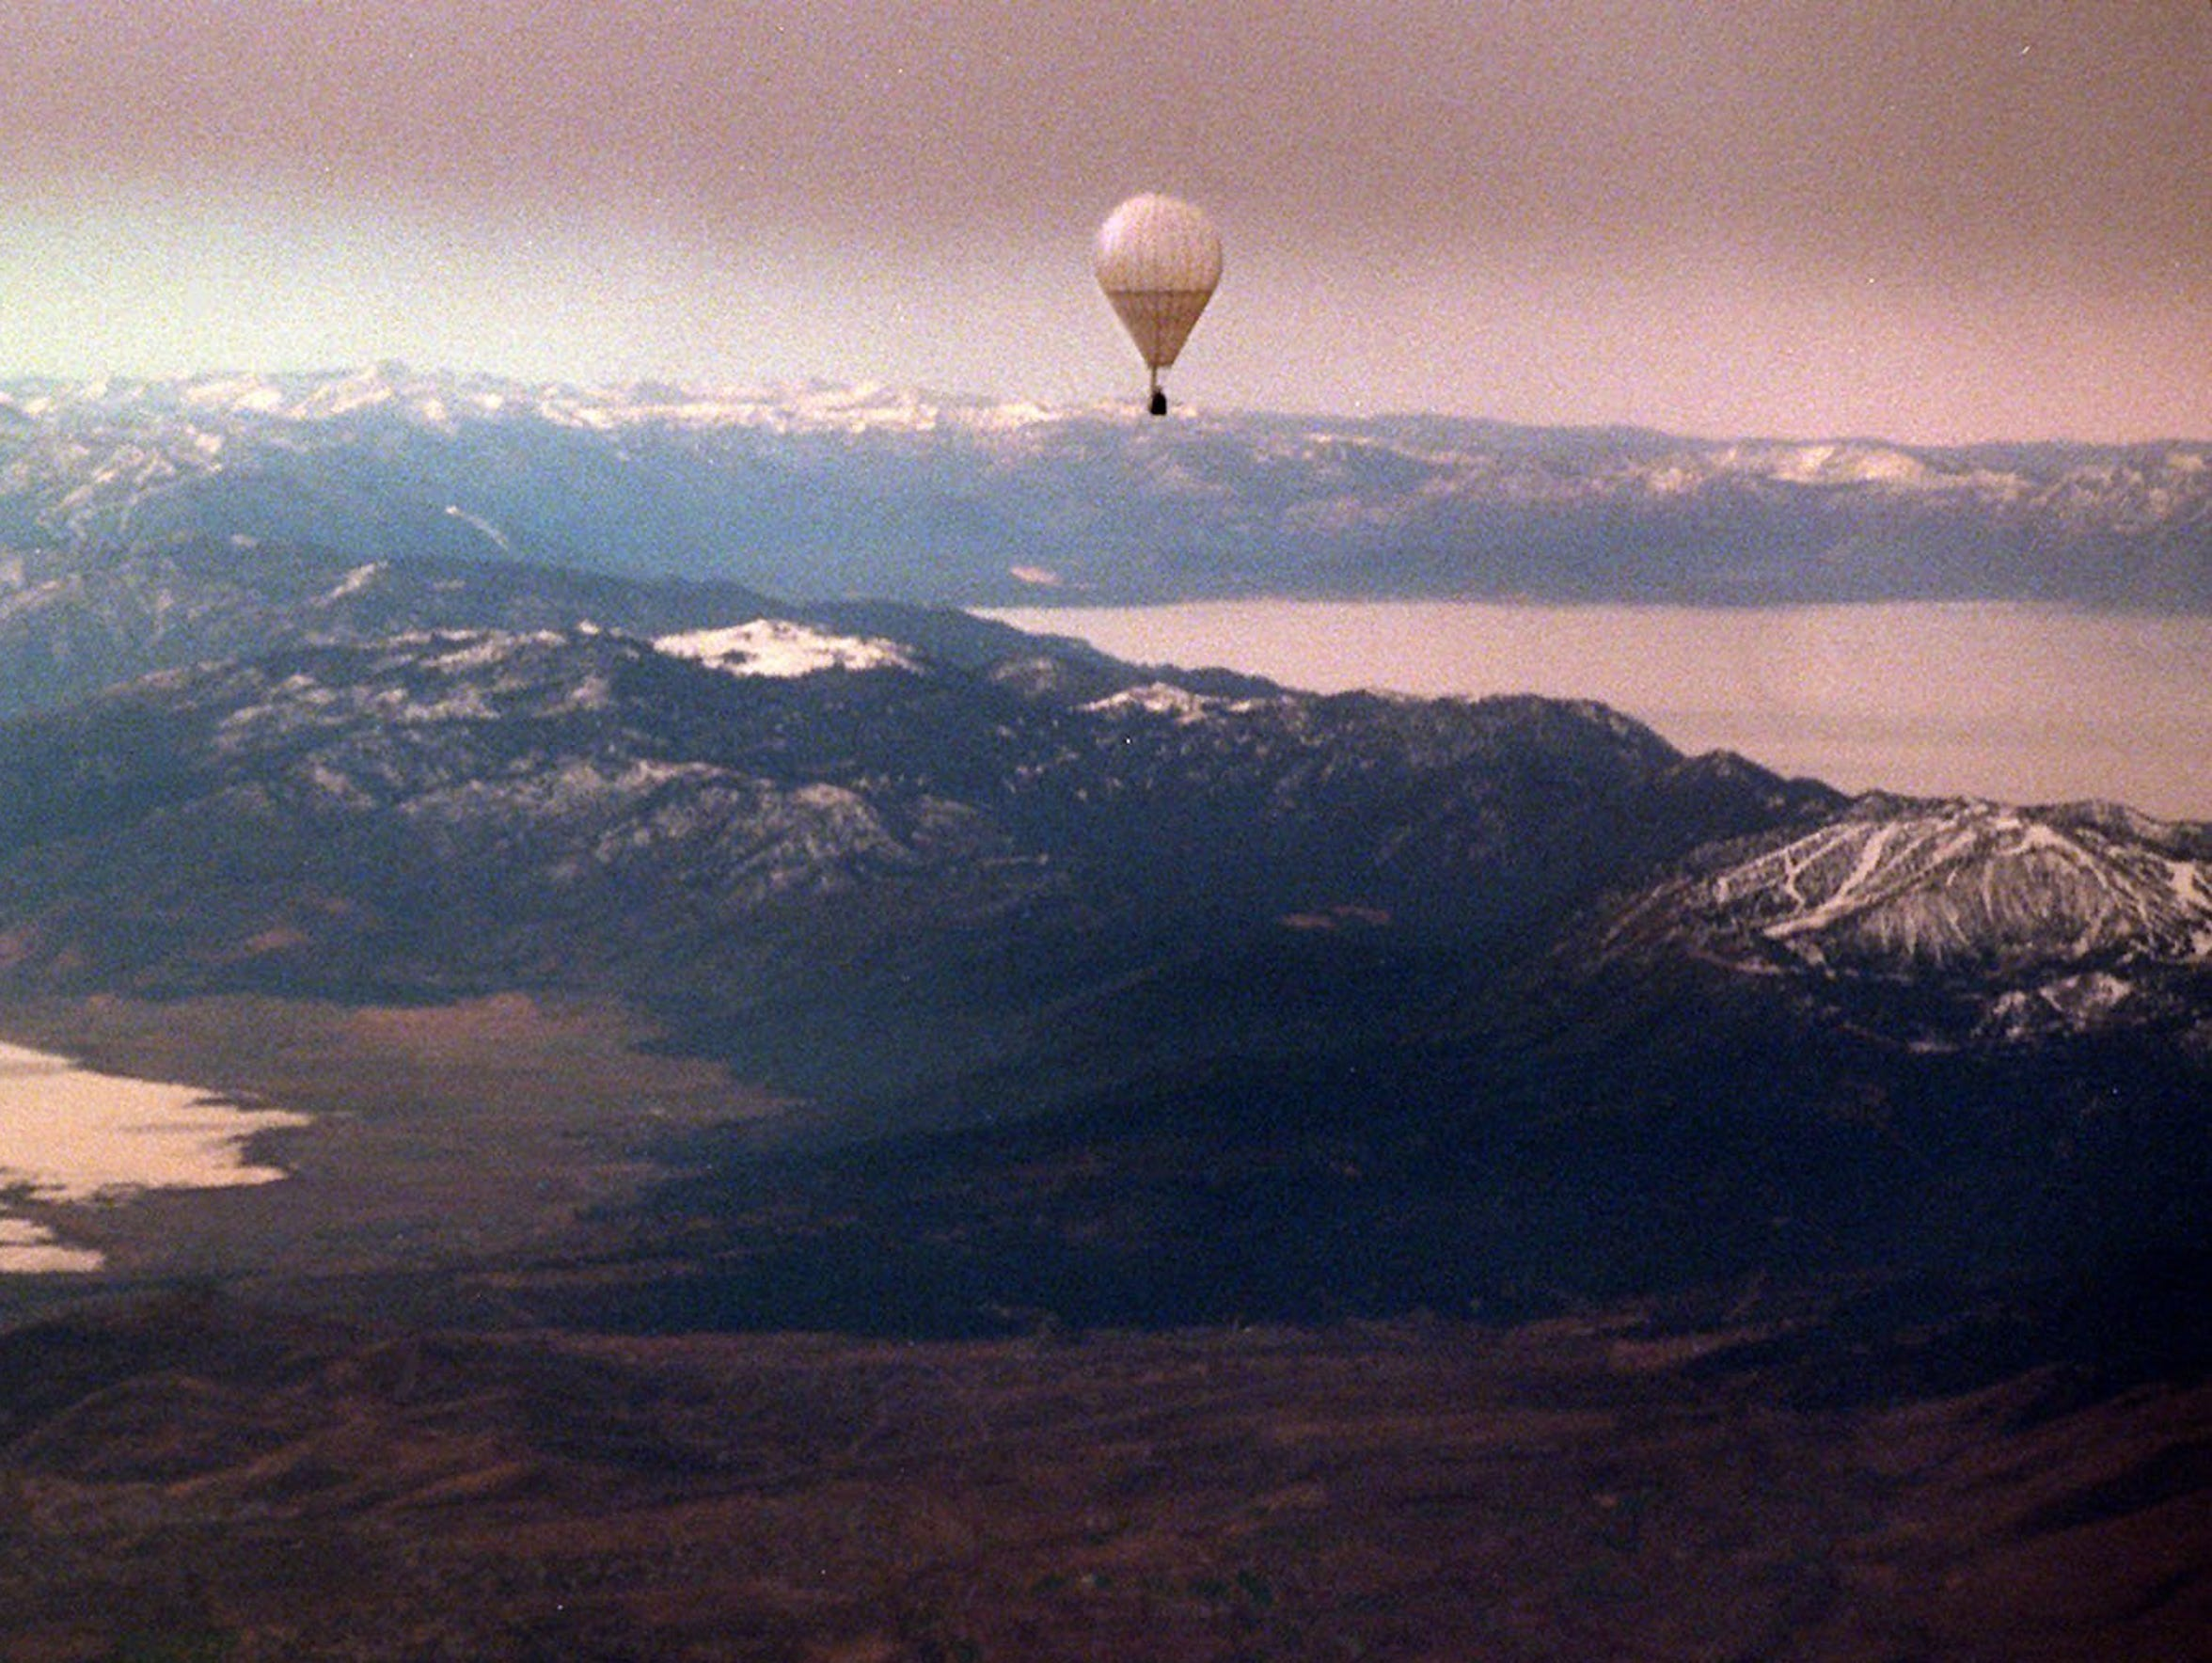 Lake Tahoe Balloons patrons embark on a skyward journey